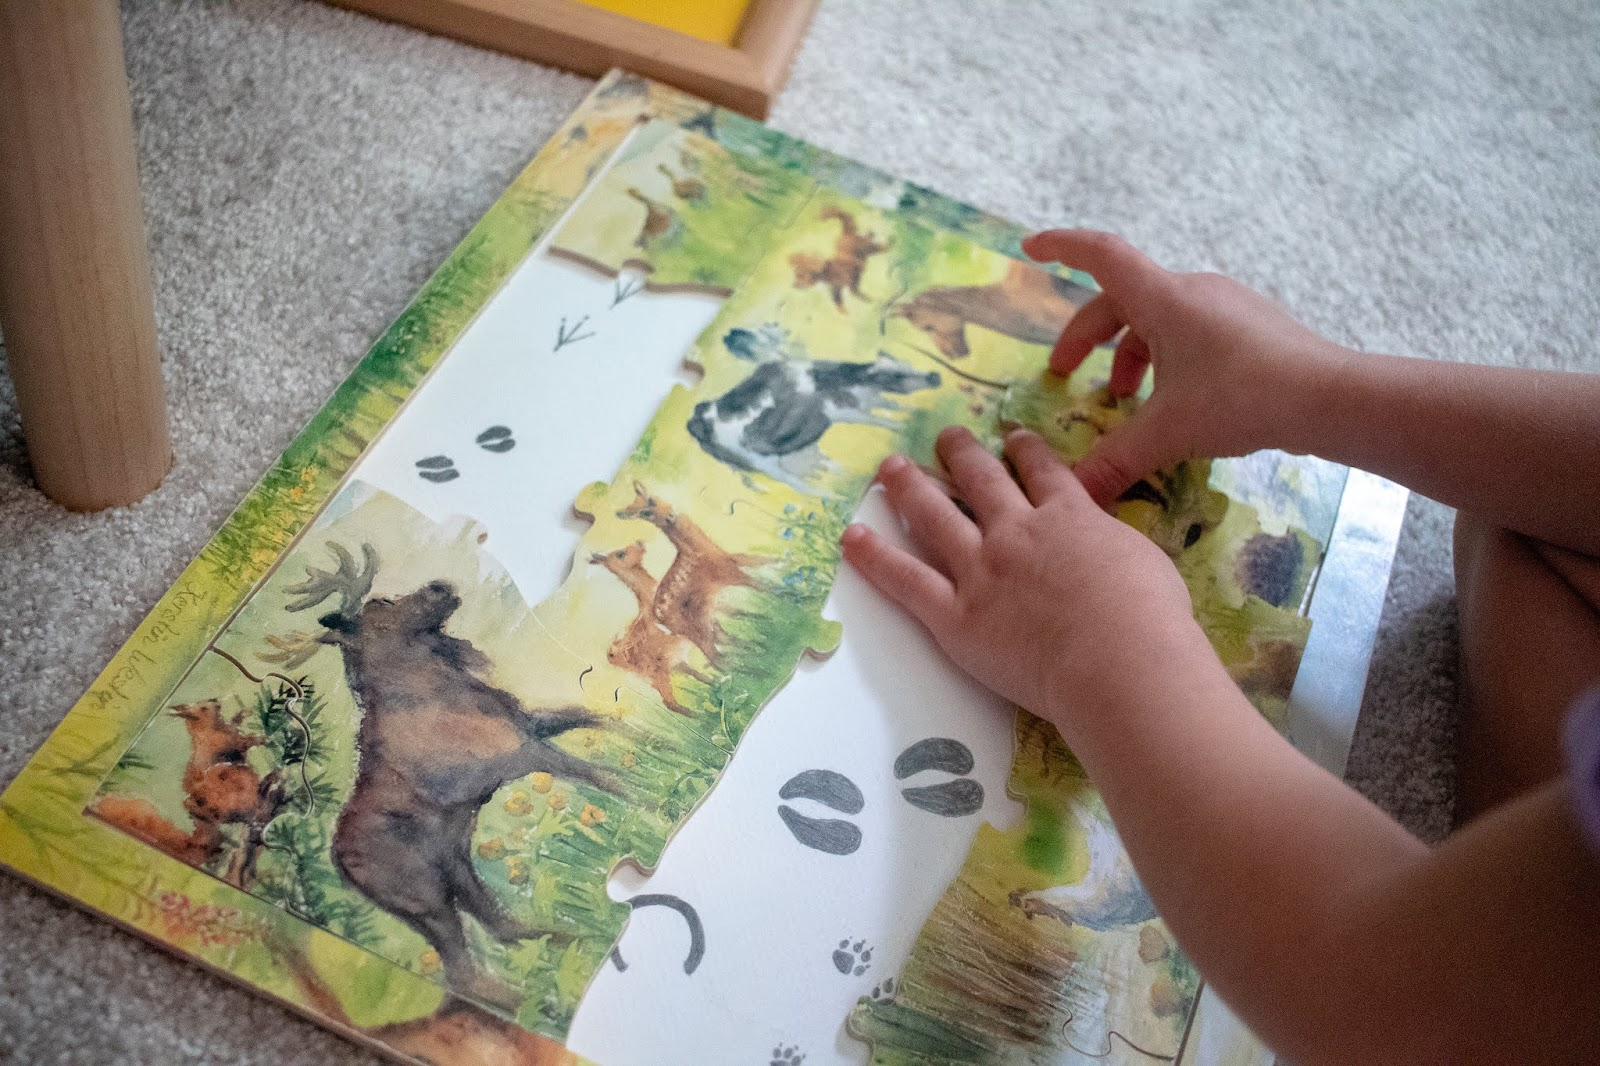 Puzzles for preschoolers, some options and puzzle types to consider